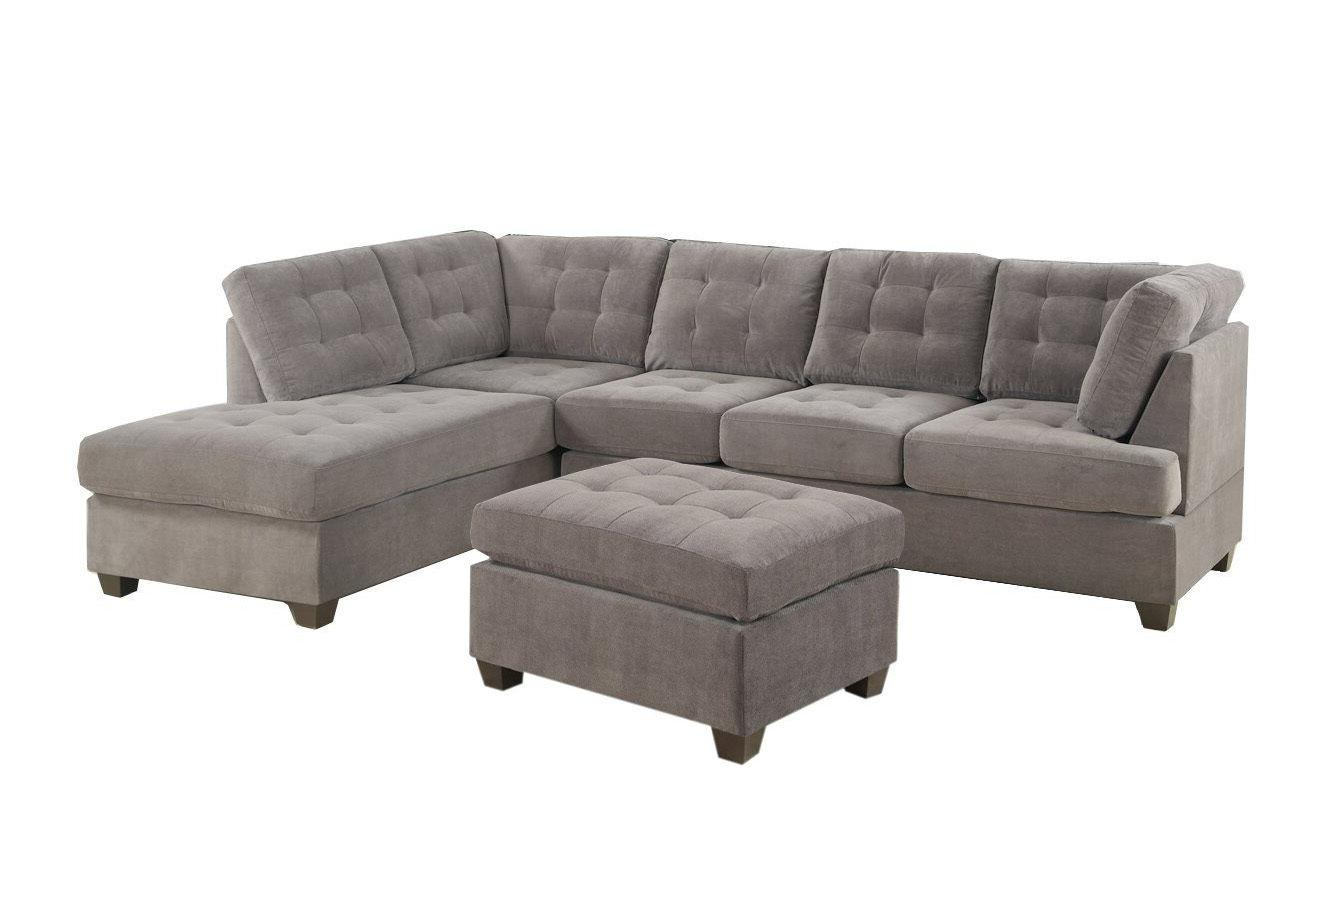 Contemporary Grey Sofa Microsuede with